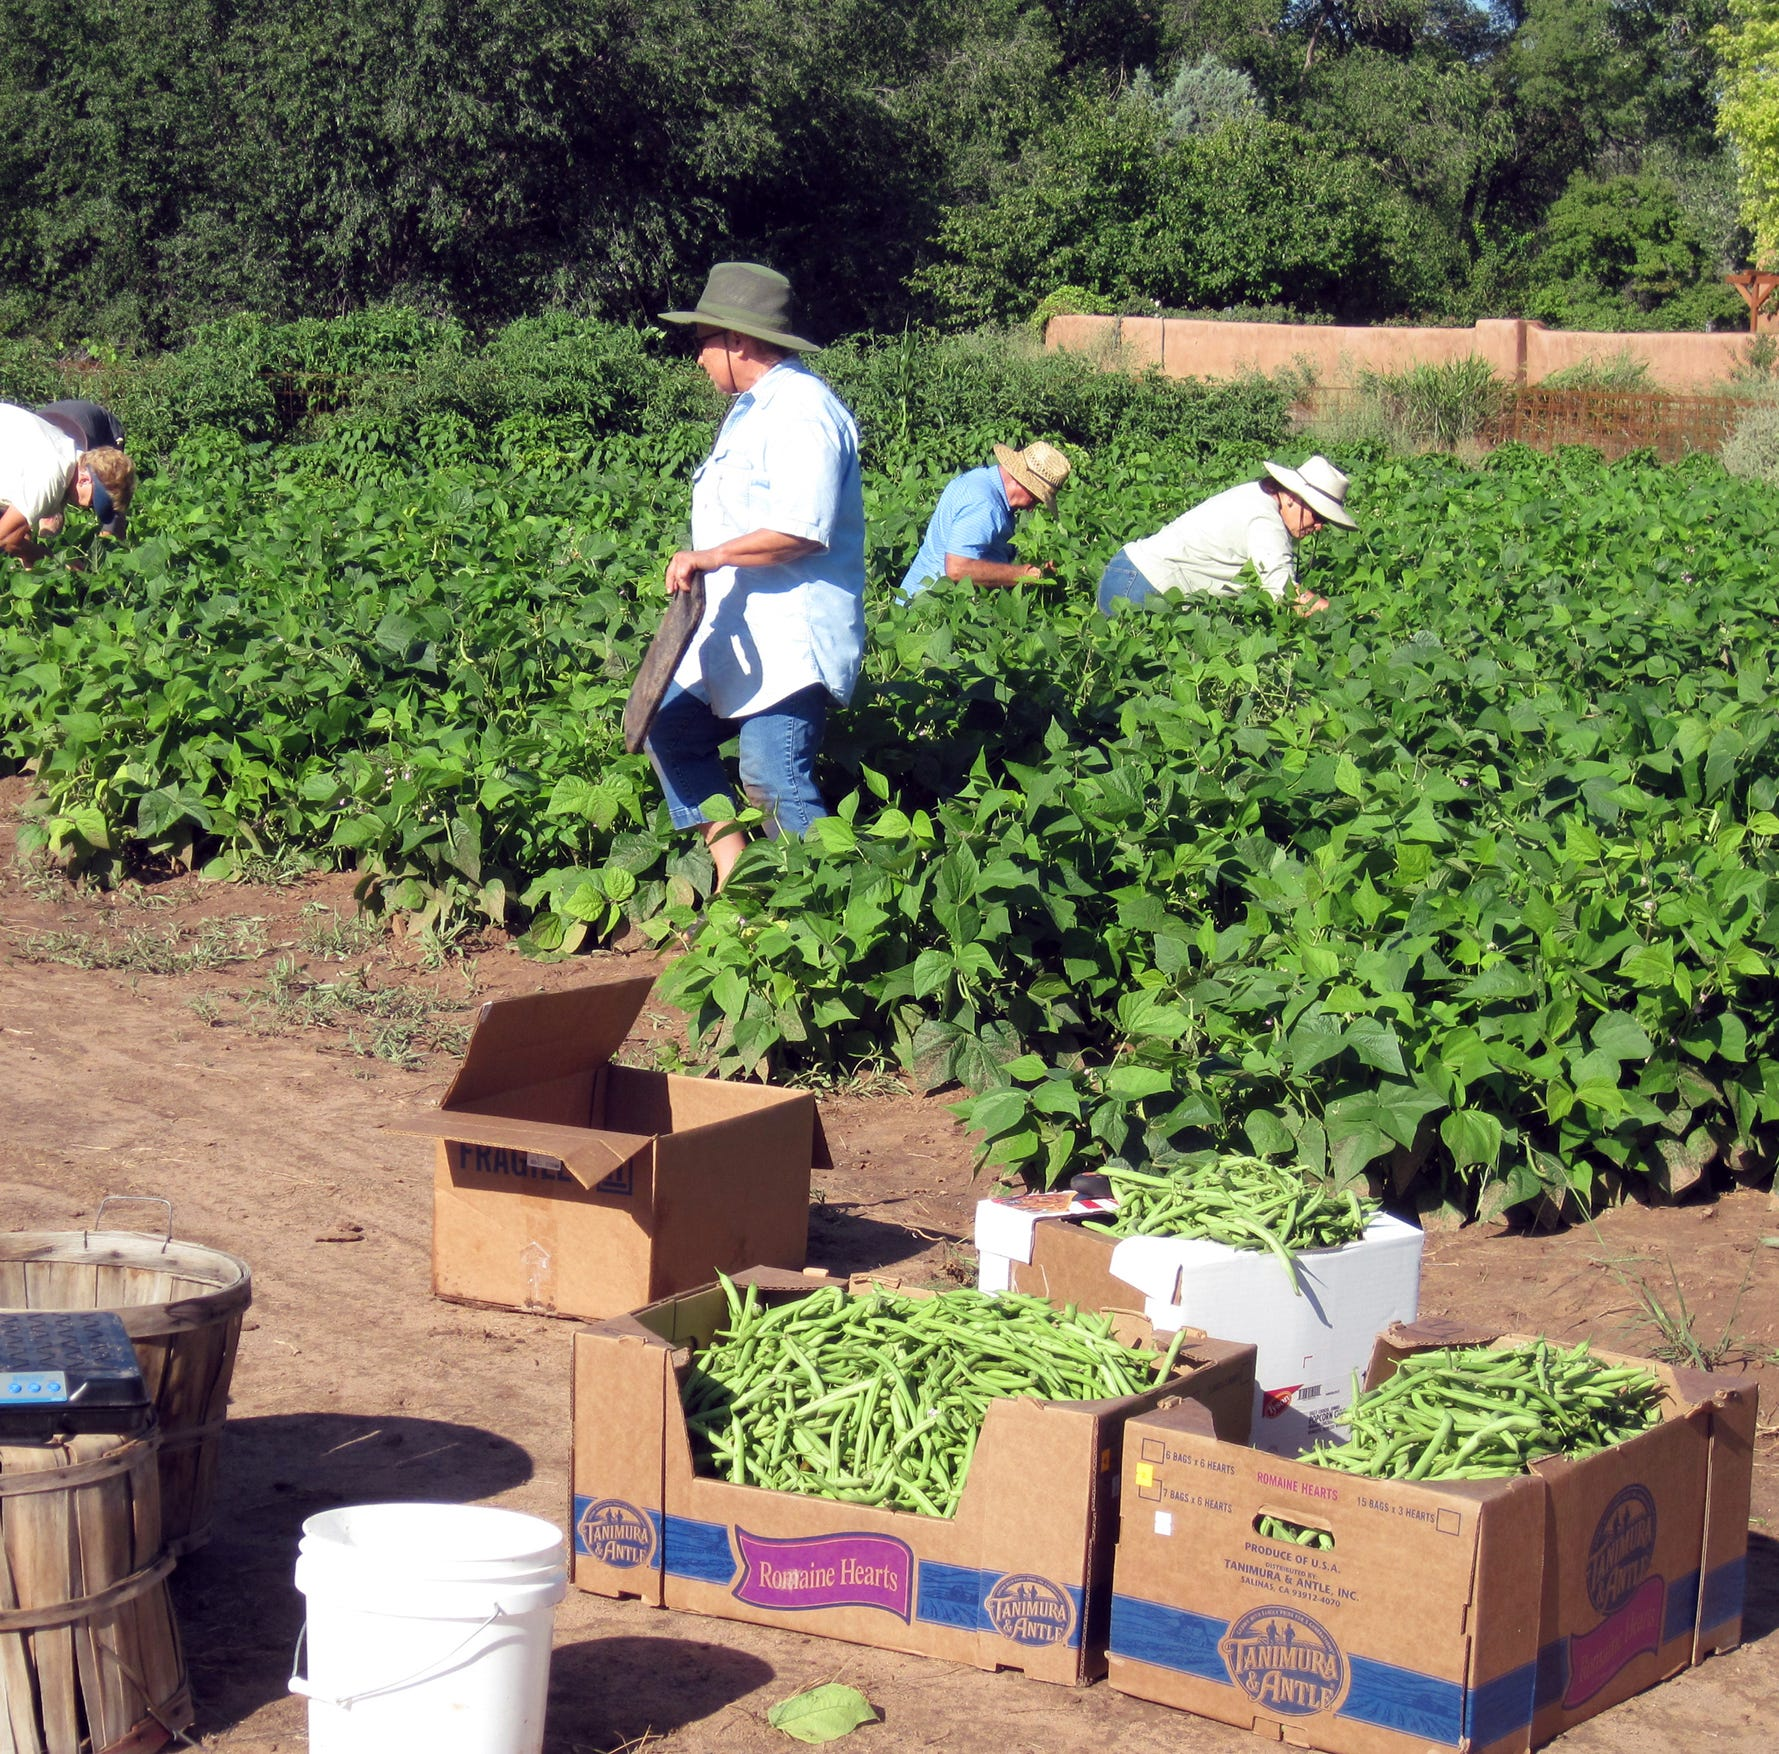 Master Gardeners to hold statewide conference in Albuquerque